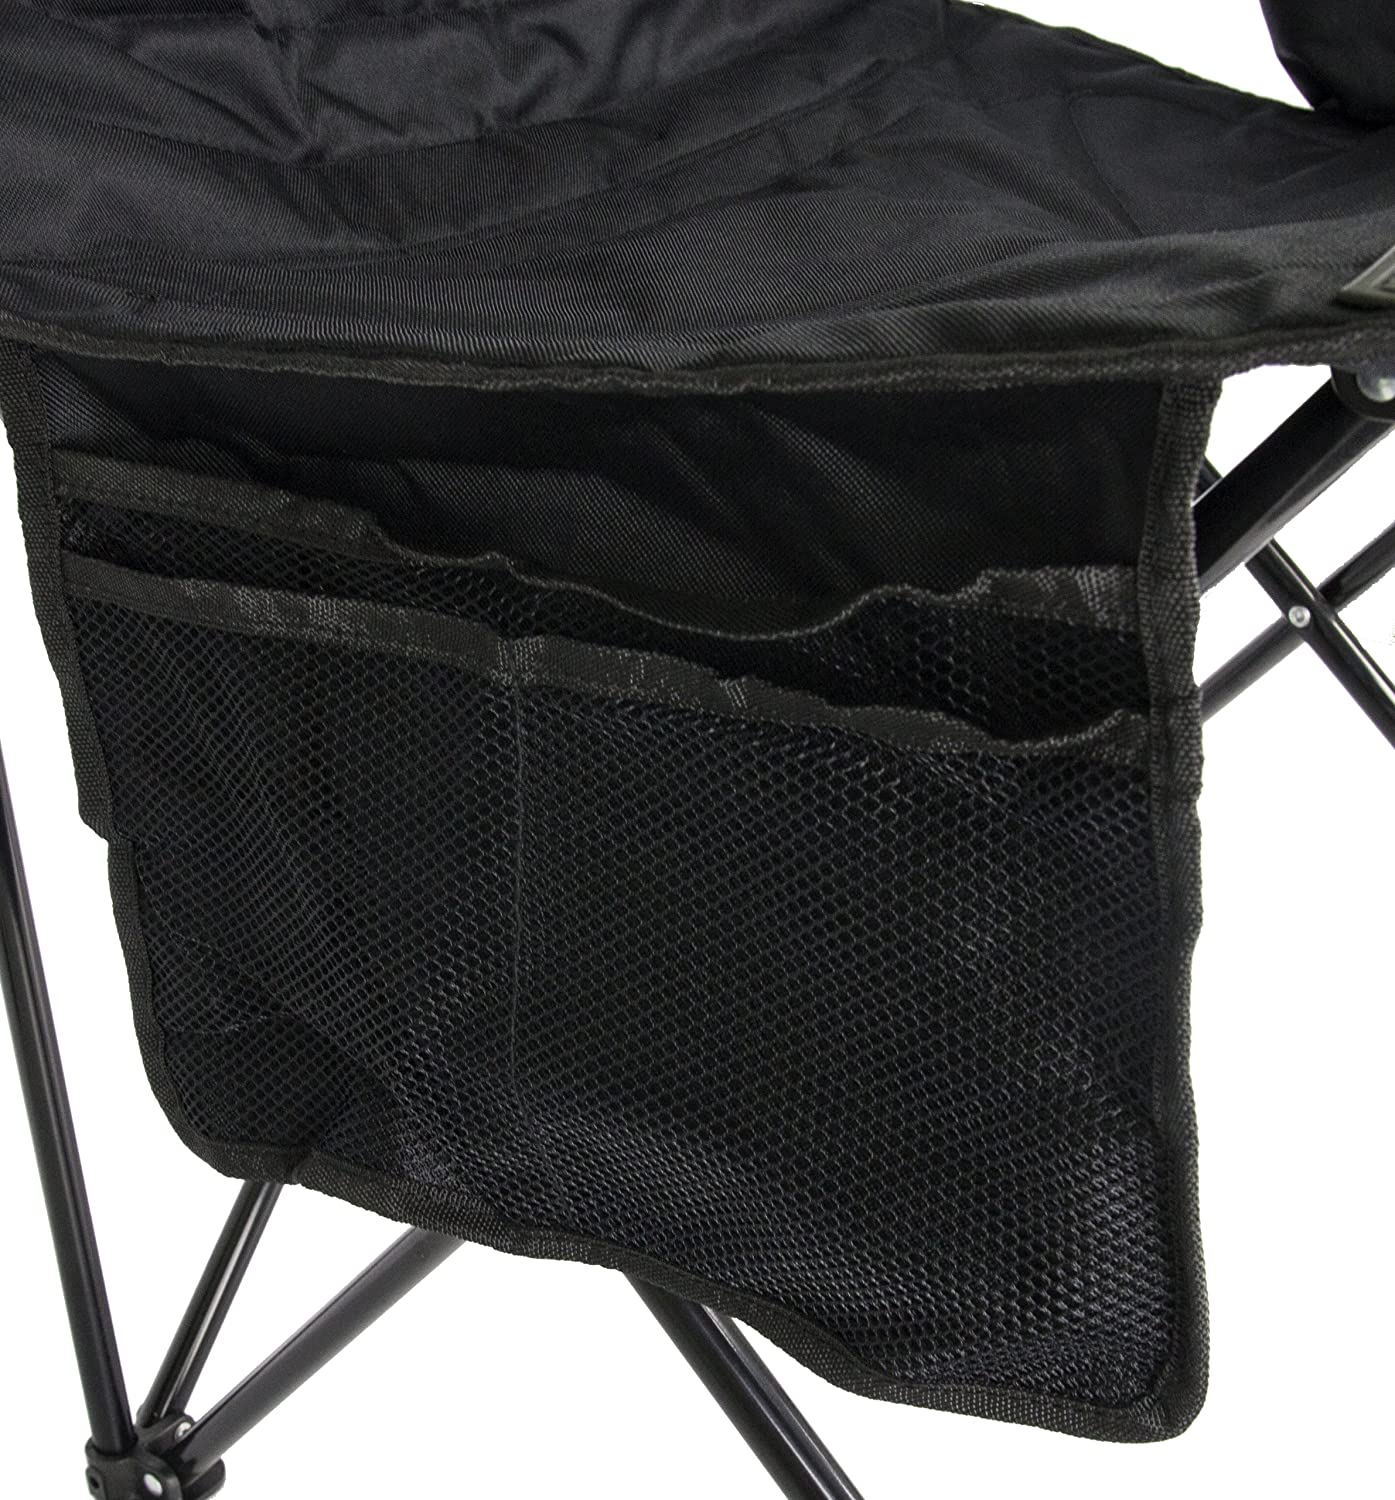 Amazon 4 Pack Coleman Cooler Quad Chairs With Built In Cooler